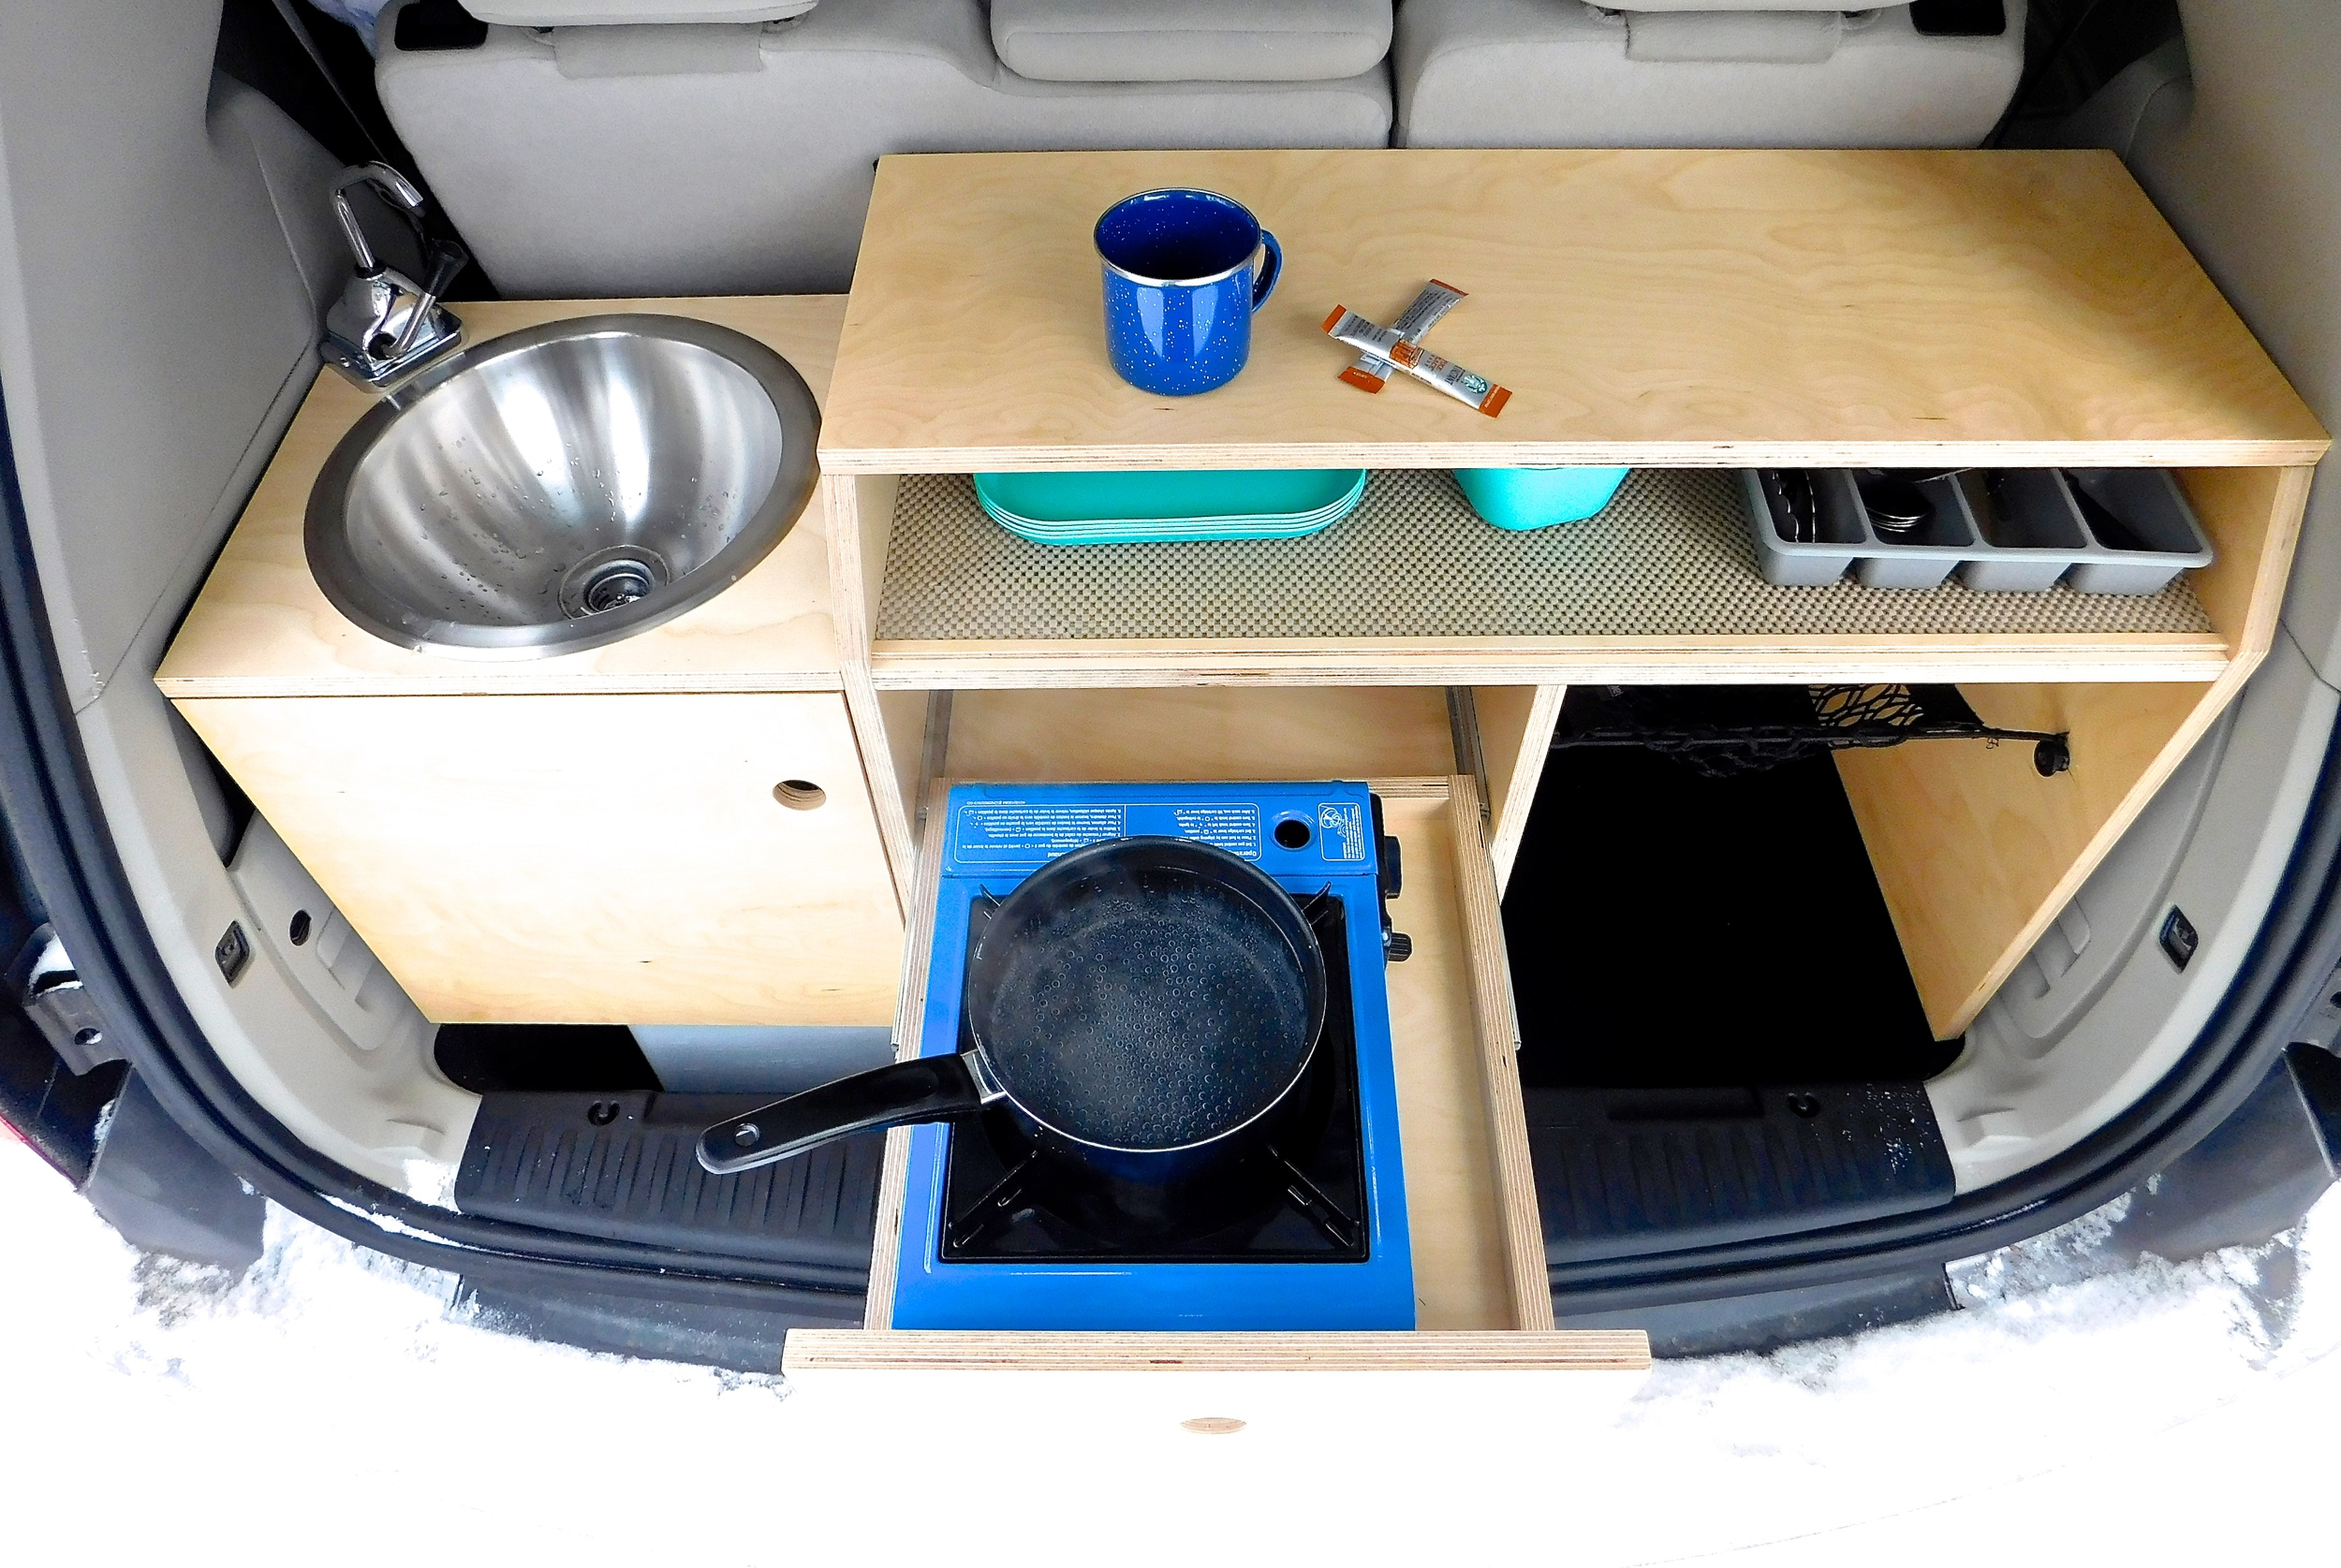 Kitchen Setup in the OG Campervan